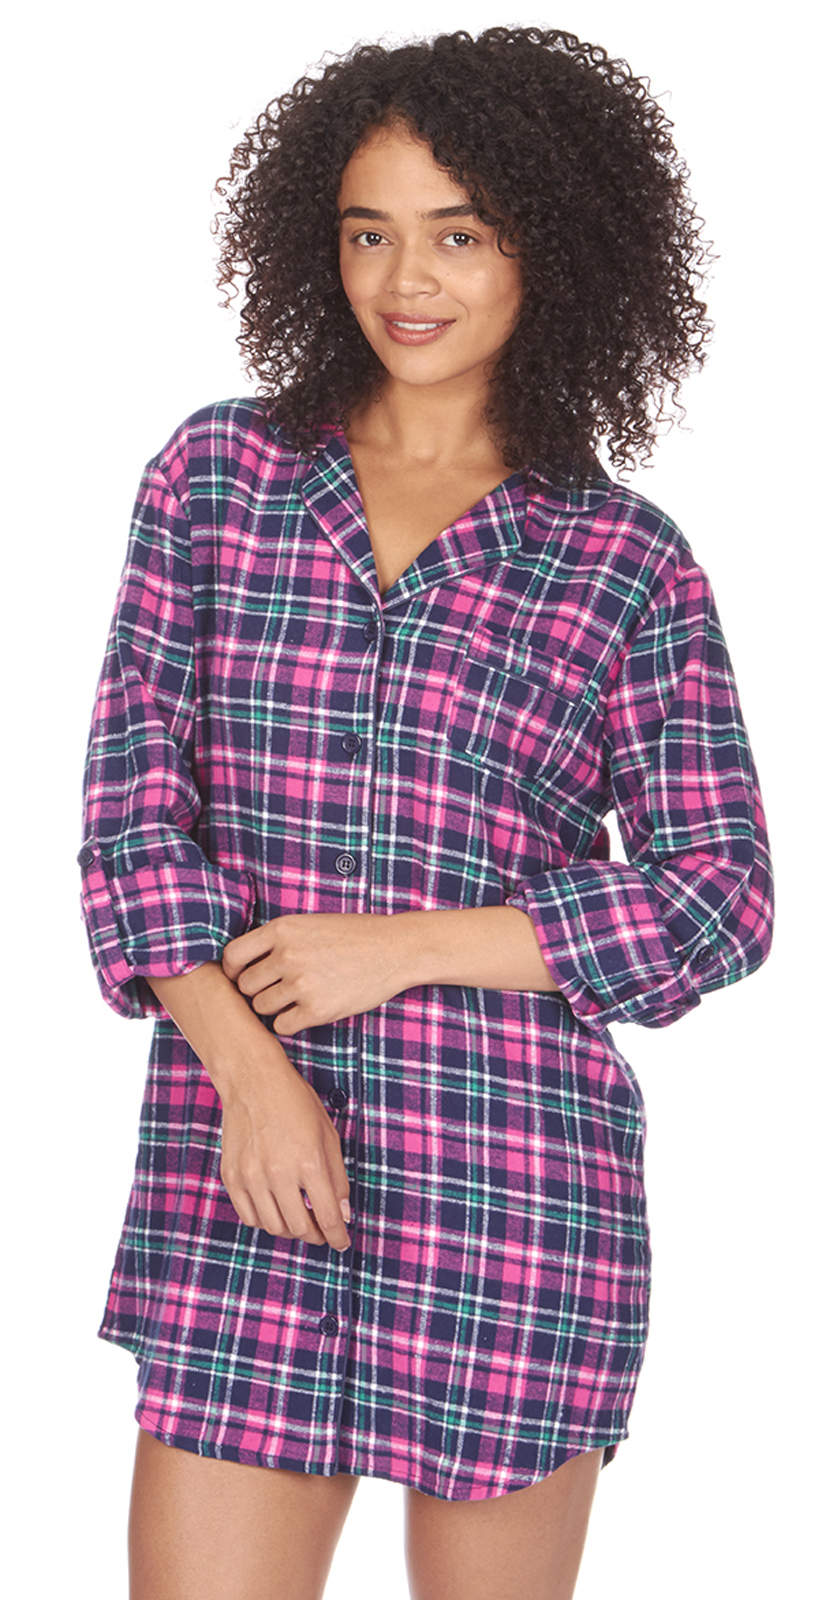 ladies night dress pyjamas - photo #43